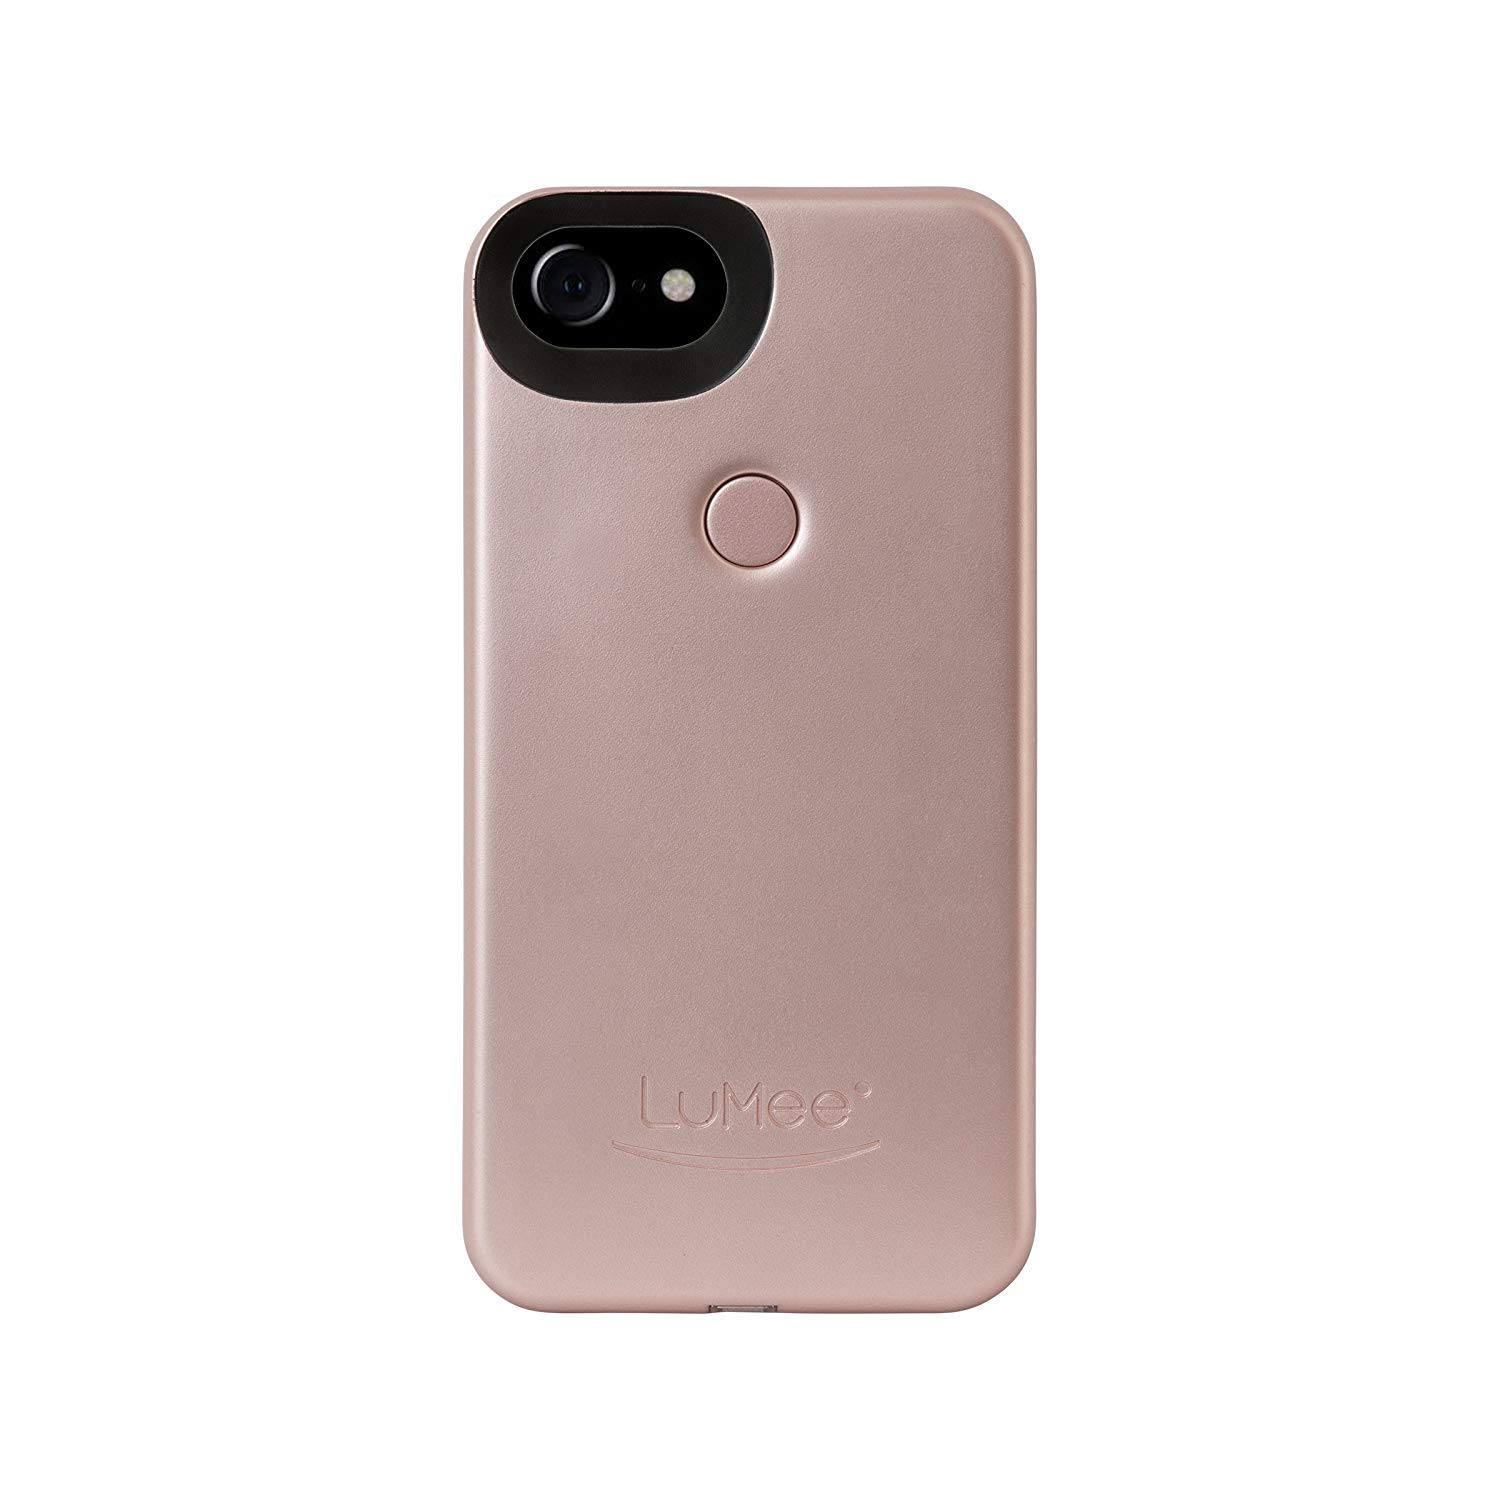 LuMee Two Selfie Phone Case, Rose Matte | LED Lighting, Variable Dimmer | Shock Absorption, Bumper Case | iPhone 8 / iPhone 7 / iPhone 6s / iPhone 6